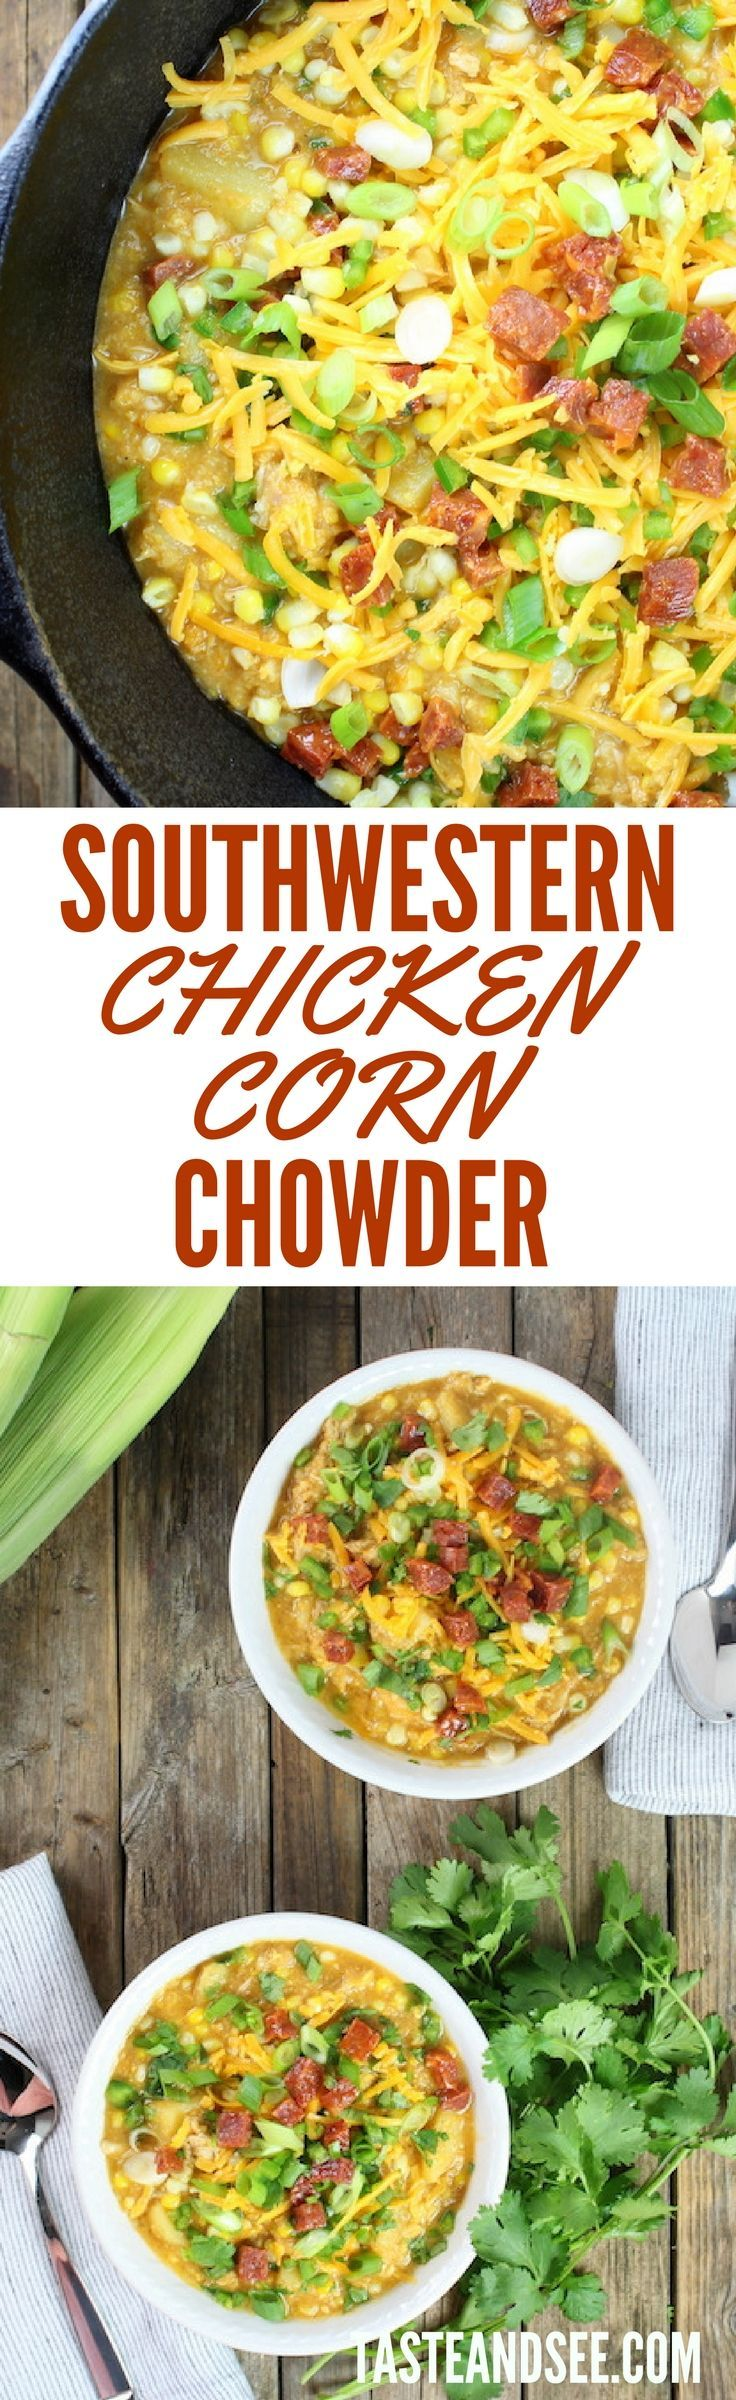 Southwestern Chicken Corn Chowder = sweet, hearty, flavorful meal all in 1 big bright sunny pot! Low fat & full of tons of veggies like onions, garlic, potatoes, squash and jalapenos. Super flavorful with zesty spices like cumin and chipotle chili pepper… topped with chorizo! #chowder http://tasteandsee.com